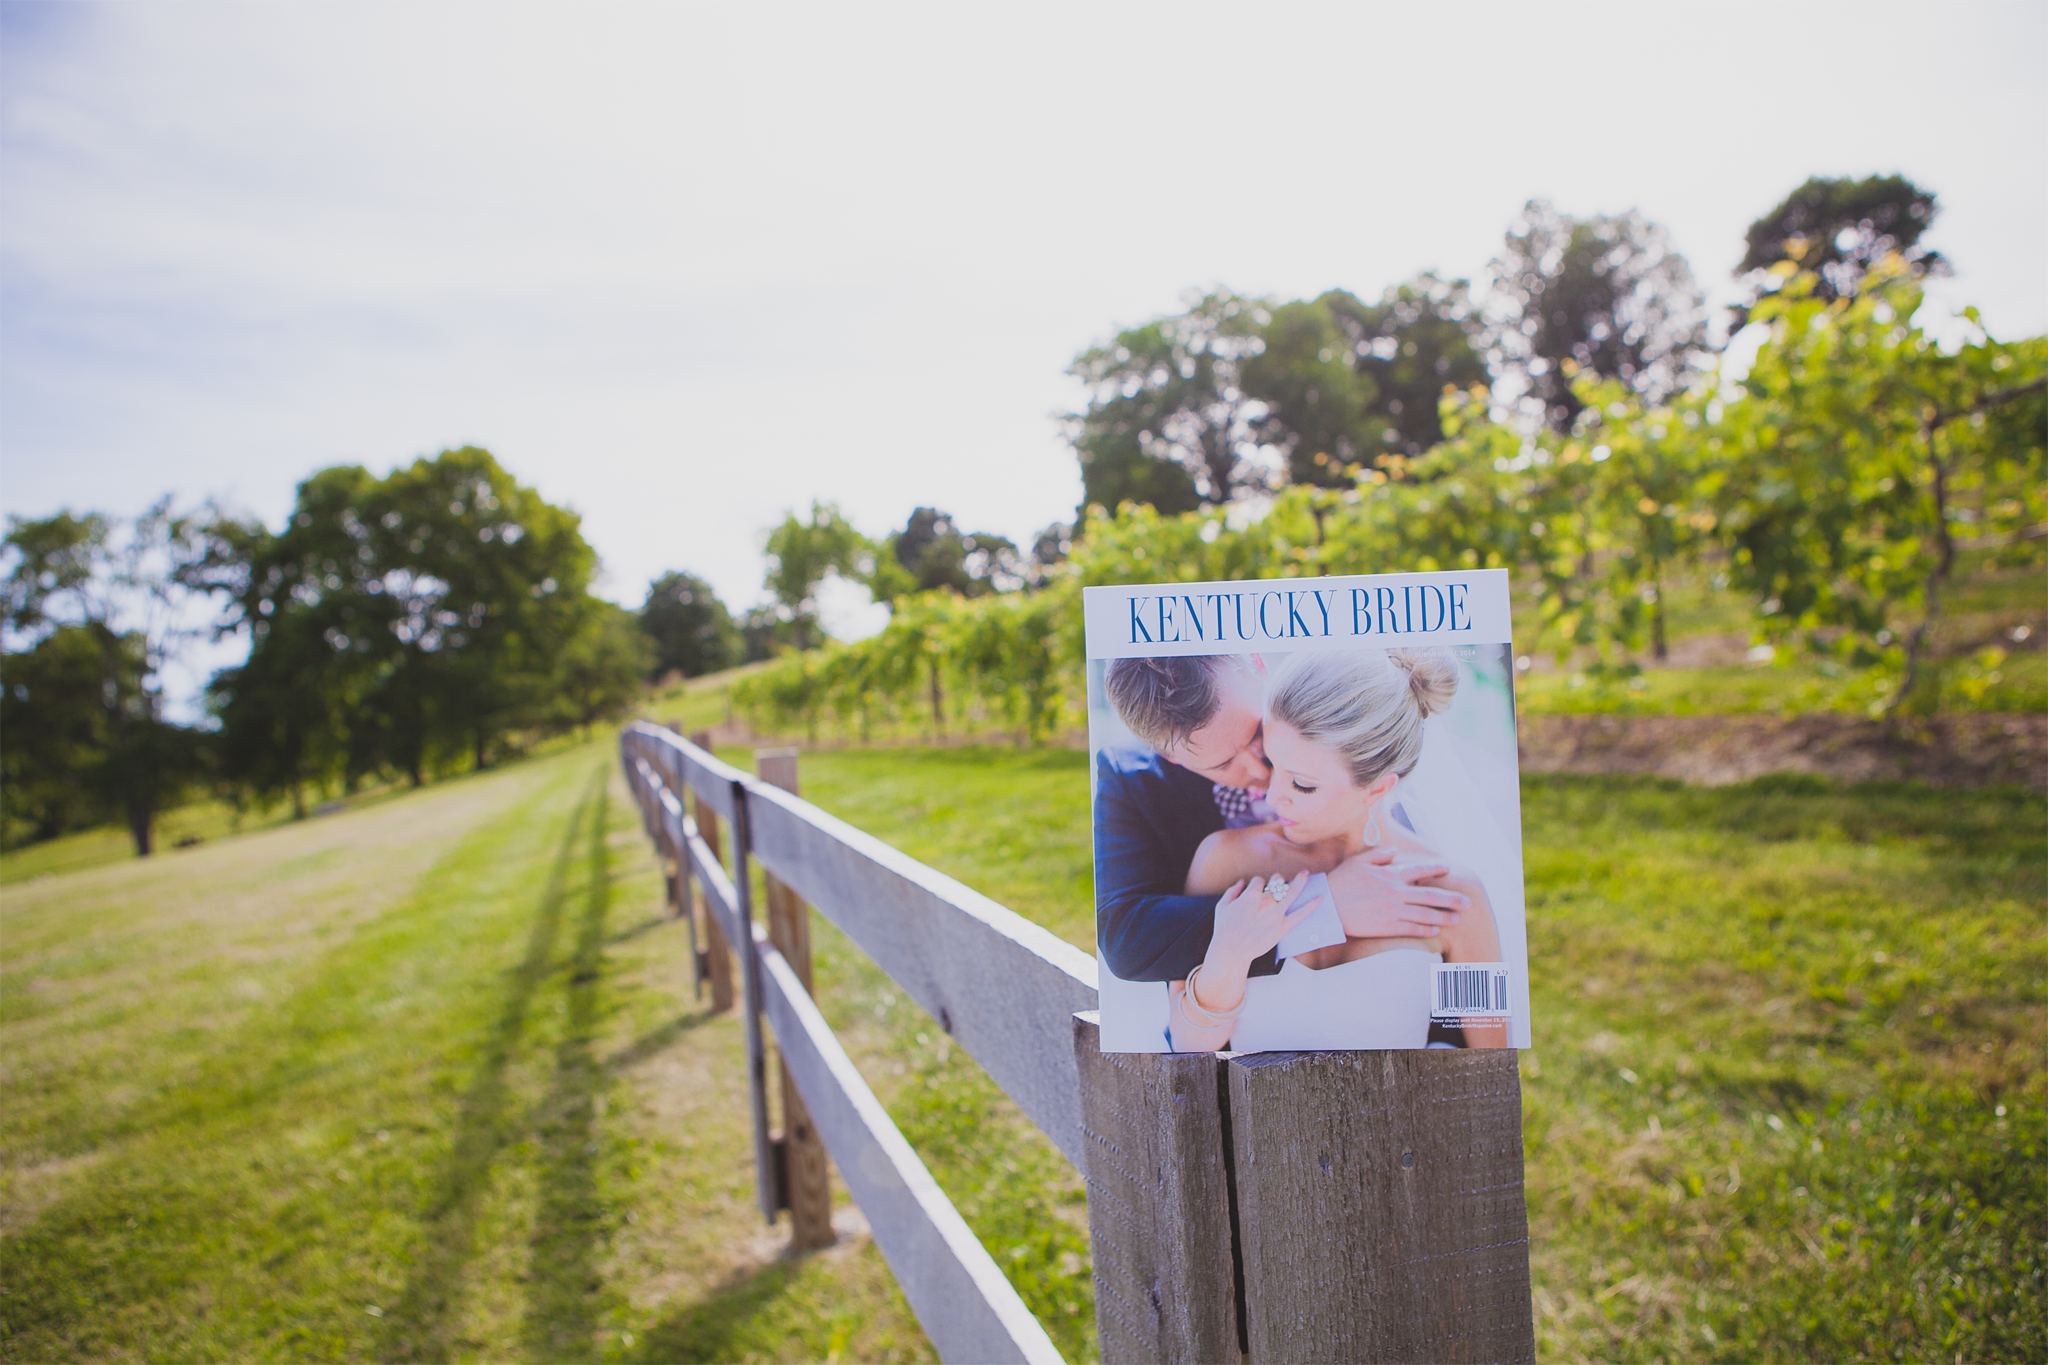 Kentucky Bride Magazine - Summer/Fall 2014